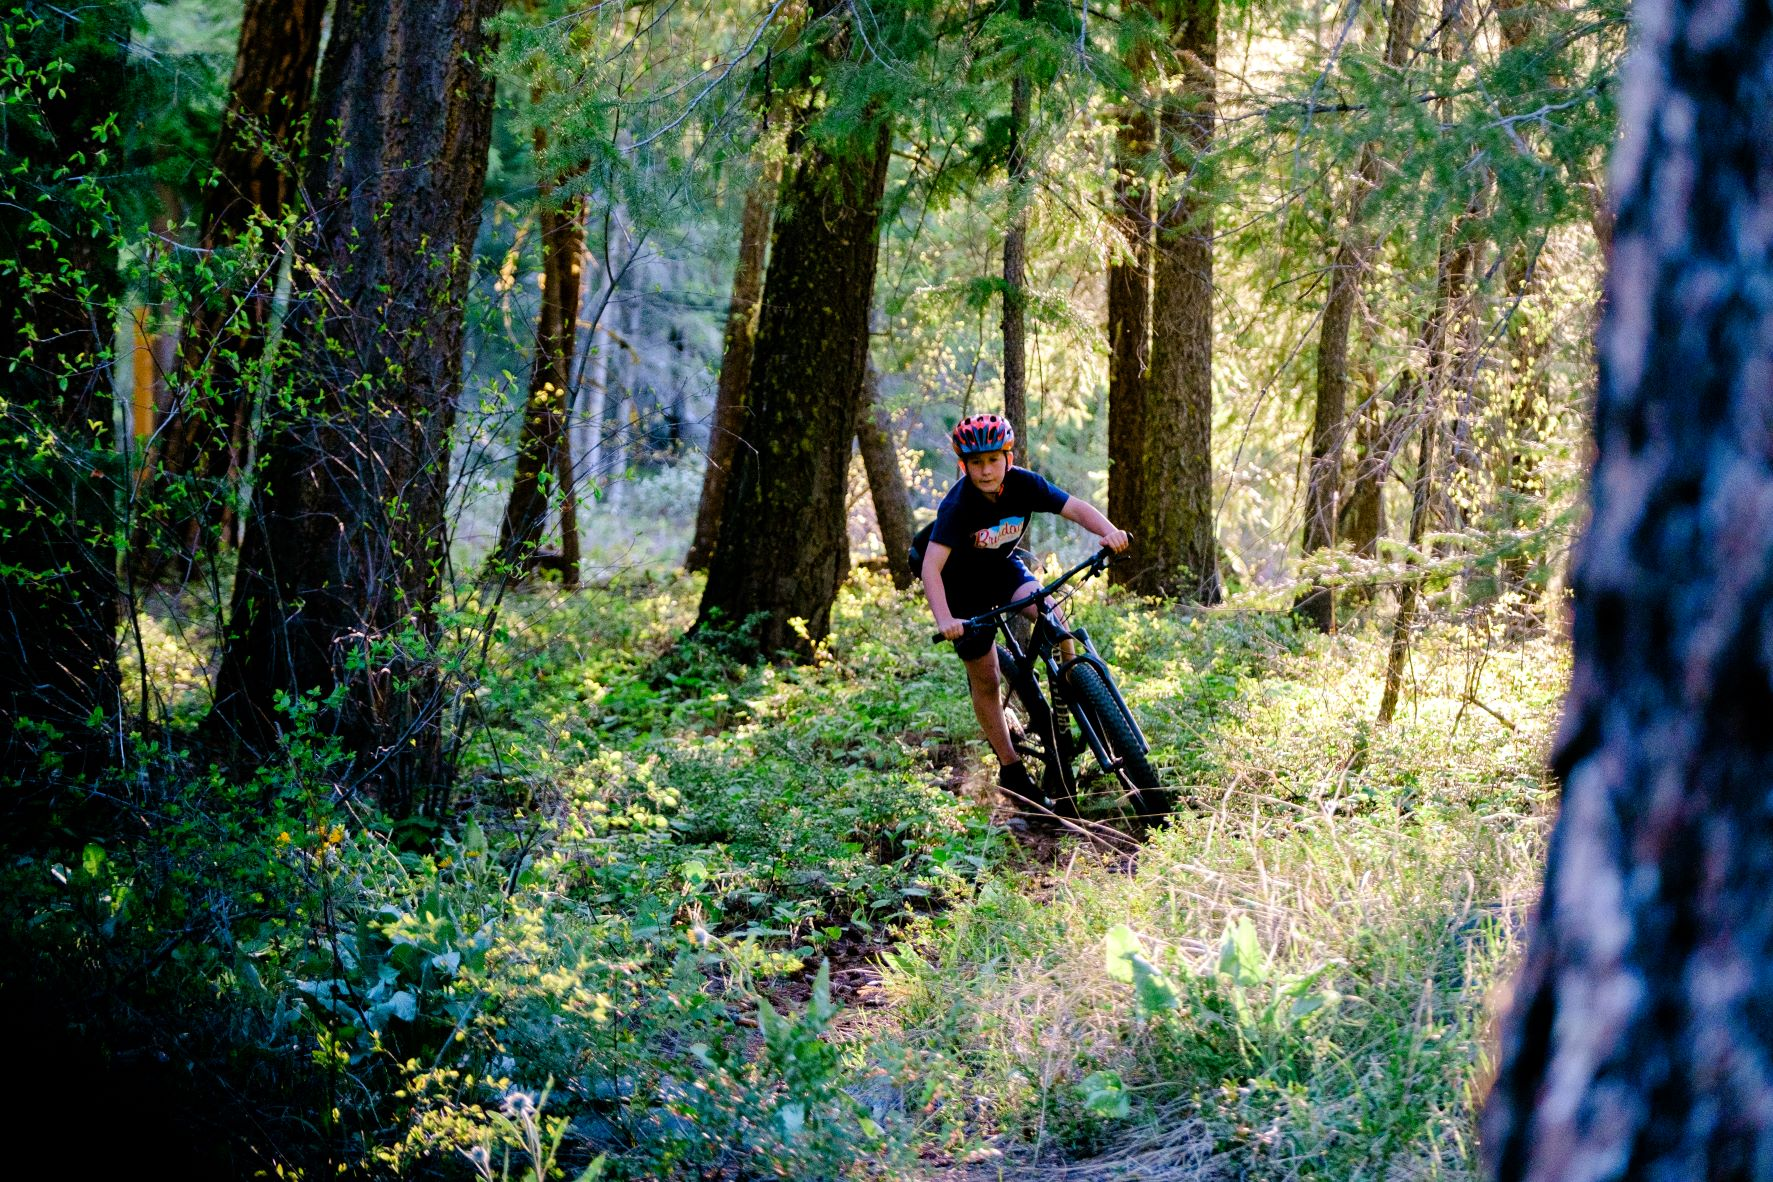 Young mountain biker riding along a singletrack trail through the forest with sunlight coming down between the trees.